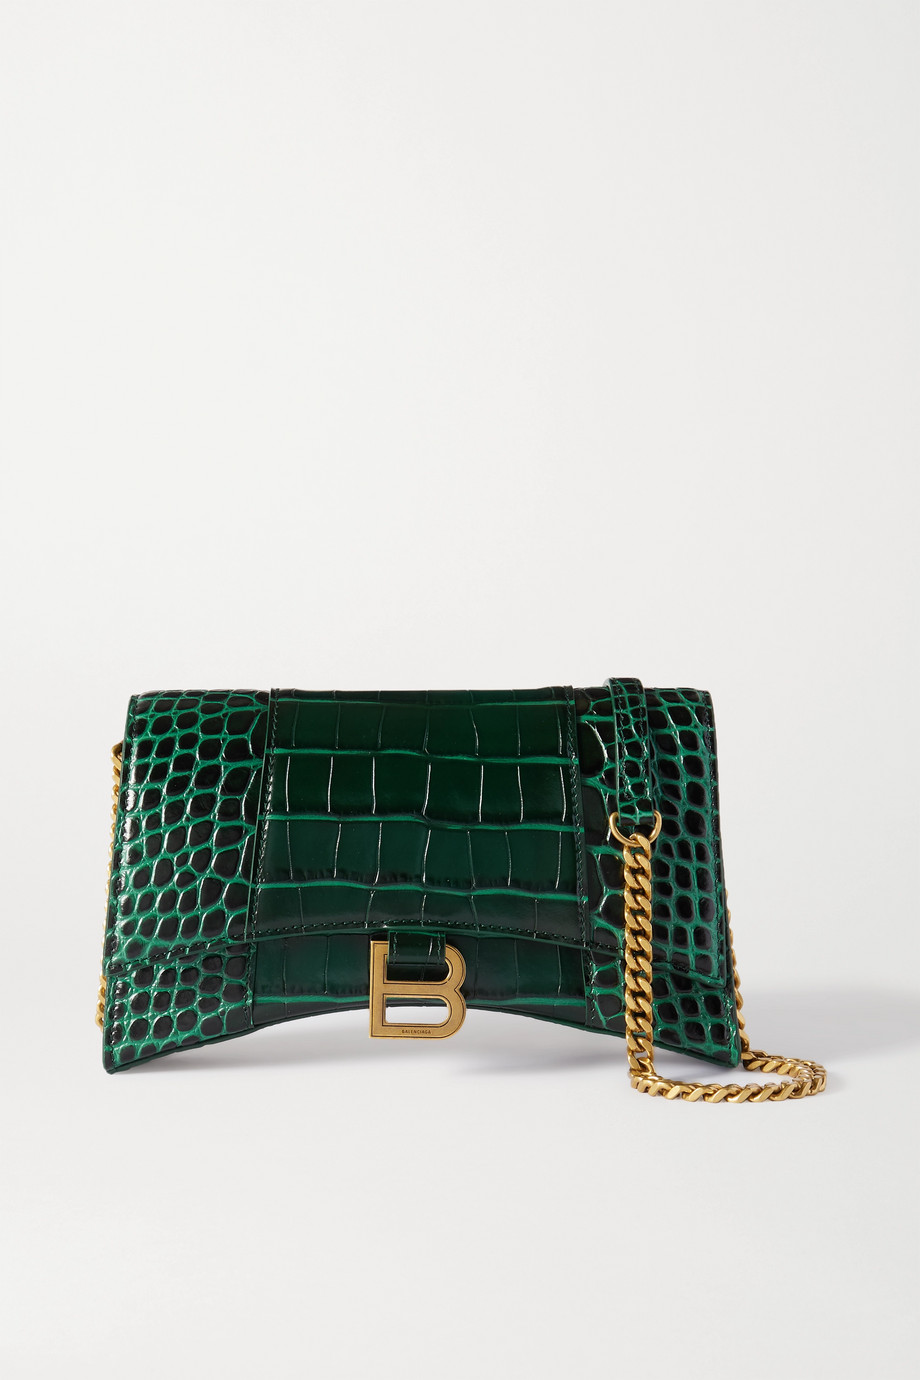 Balenciaga Hourglass croc-effect leather tote